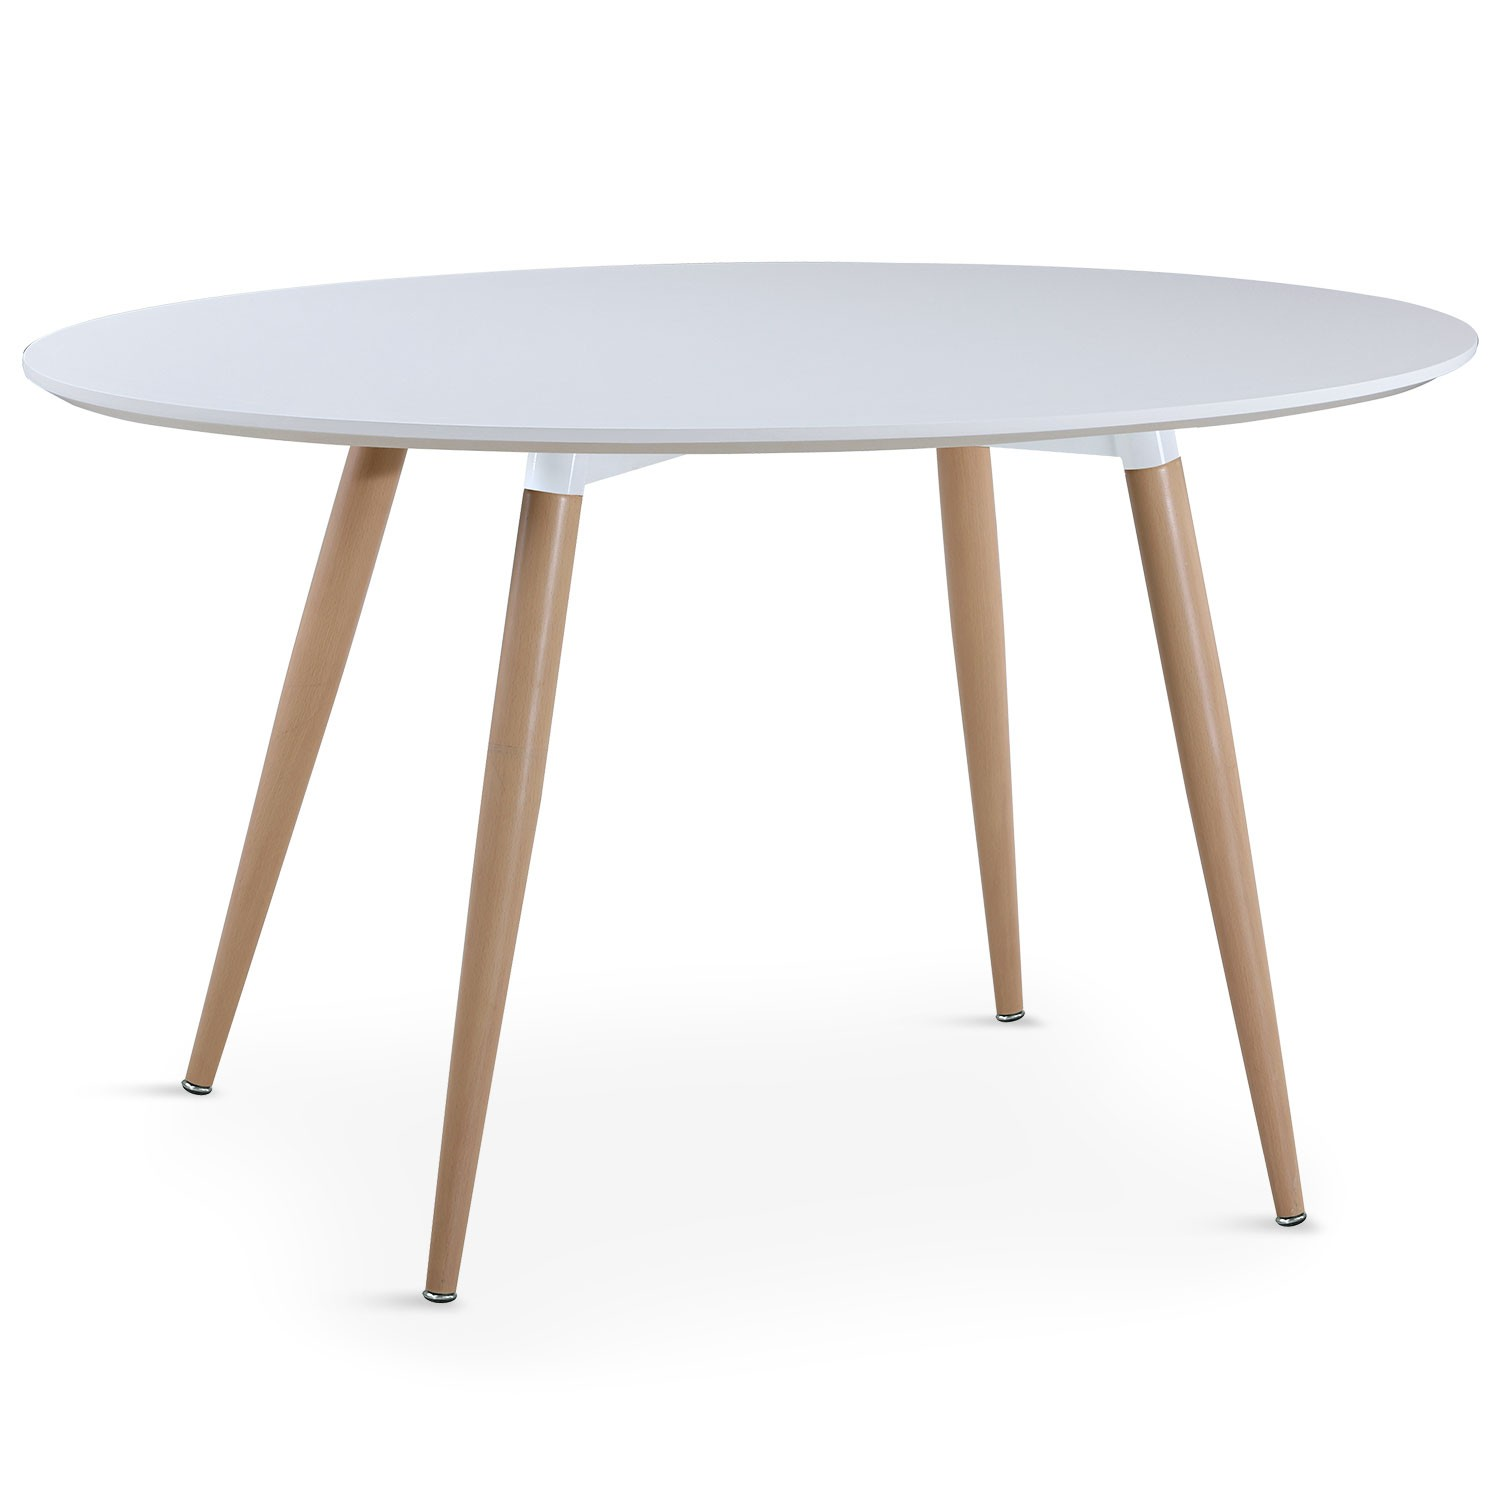 Table ovale scandinave lunea blanc table table basse - Table basse ovale scandinave ...